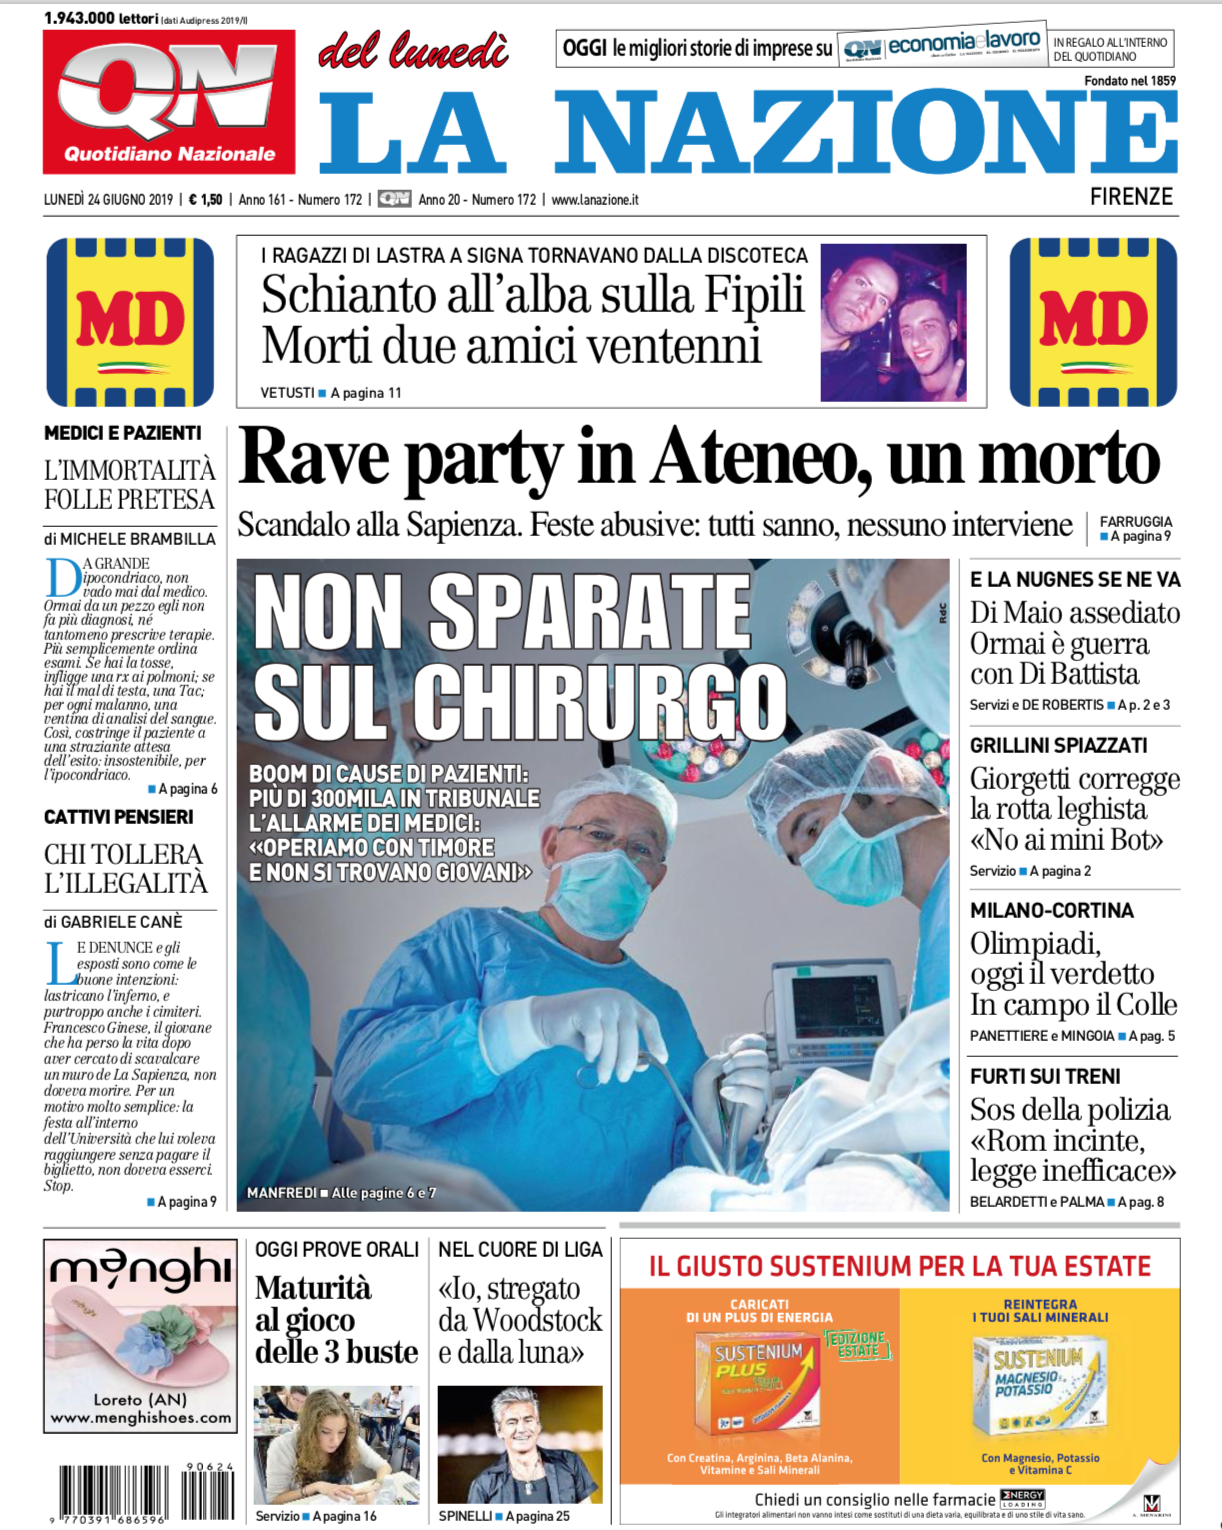 LaNazioneFirenze_FrontPage_062419.png